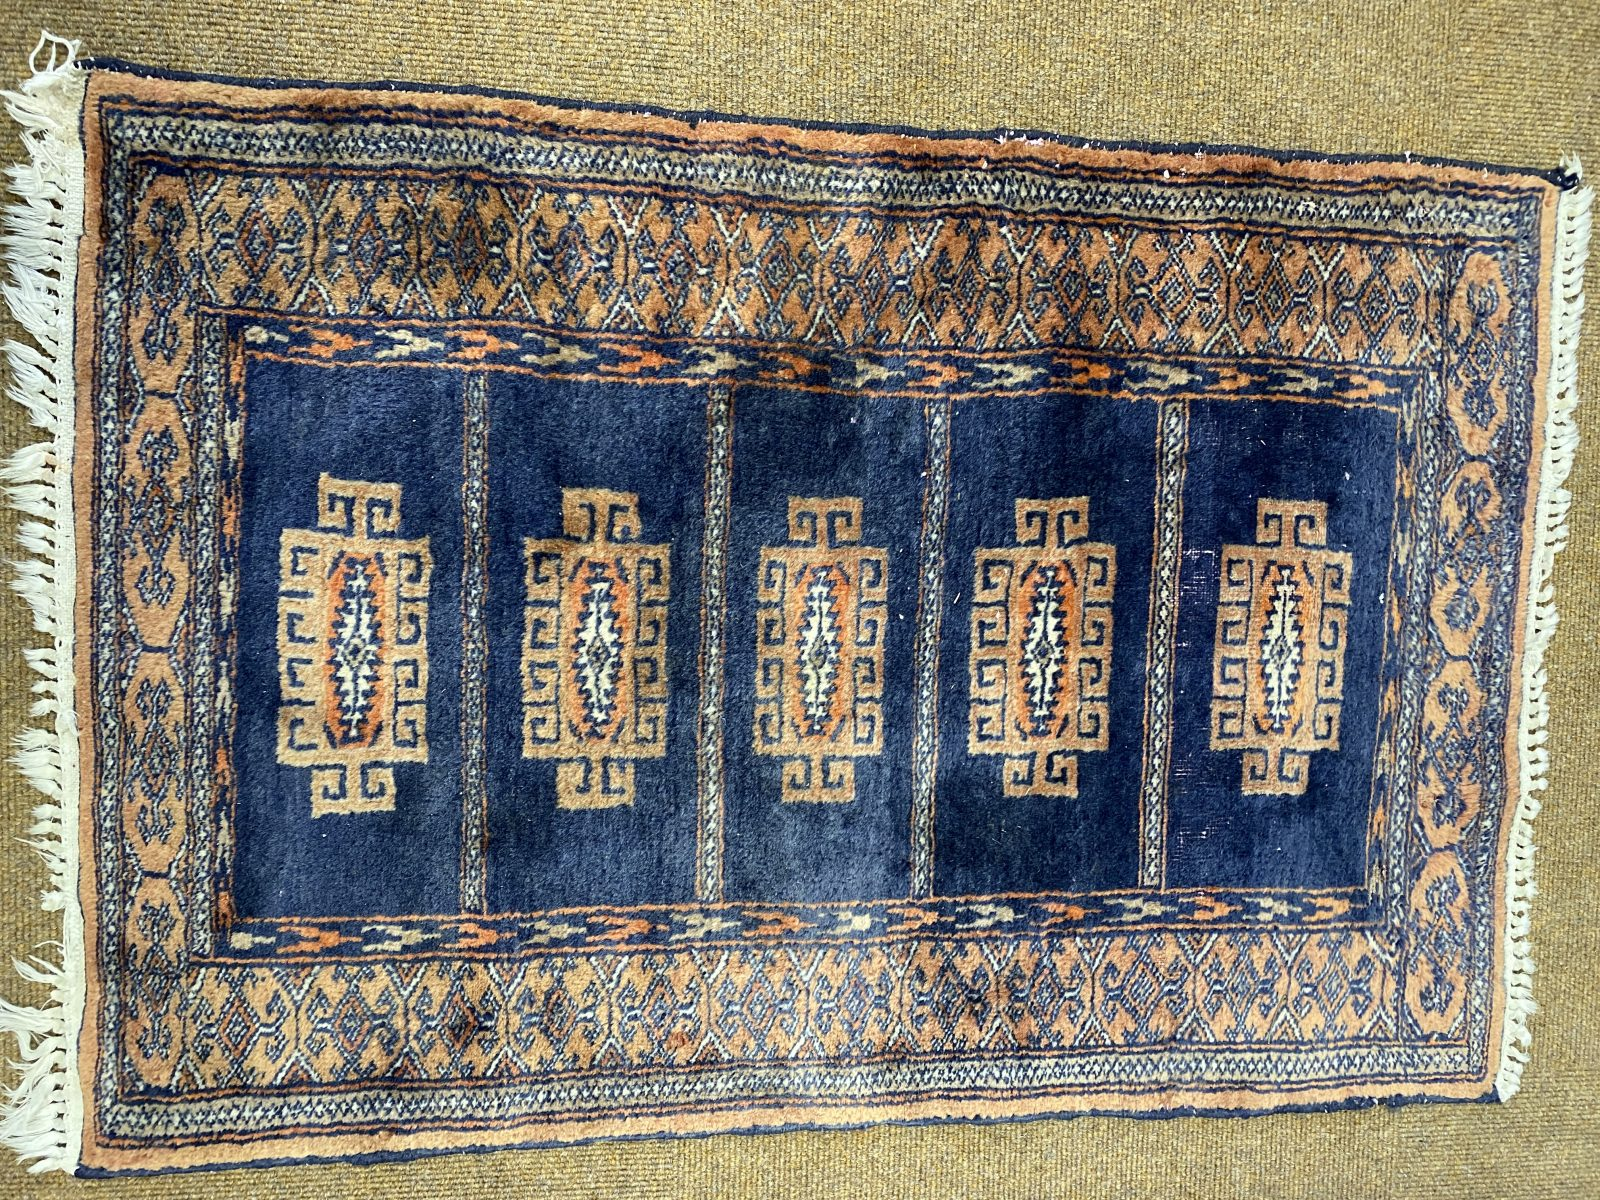 G1 - A Small Vintage Traditional Hand-Woven Rug from Pakistan, some wear to pile C 1950-1970, newly cleaned. 63cm x 91cm.  £95